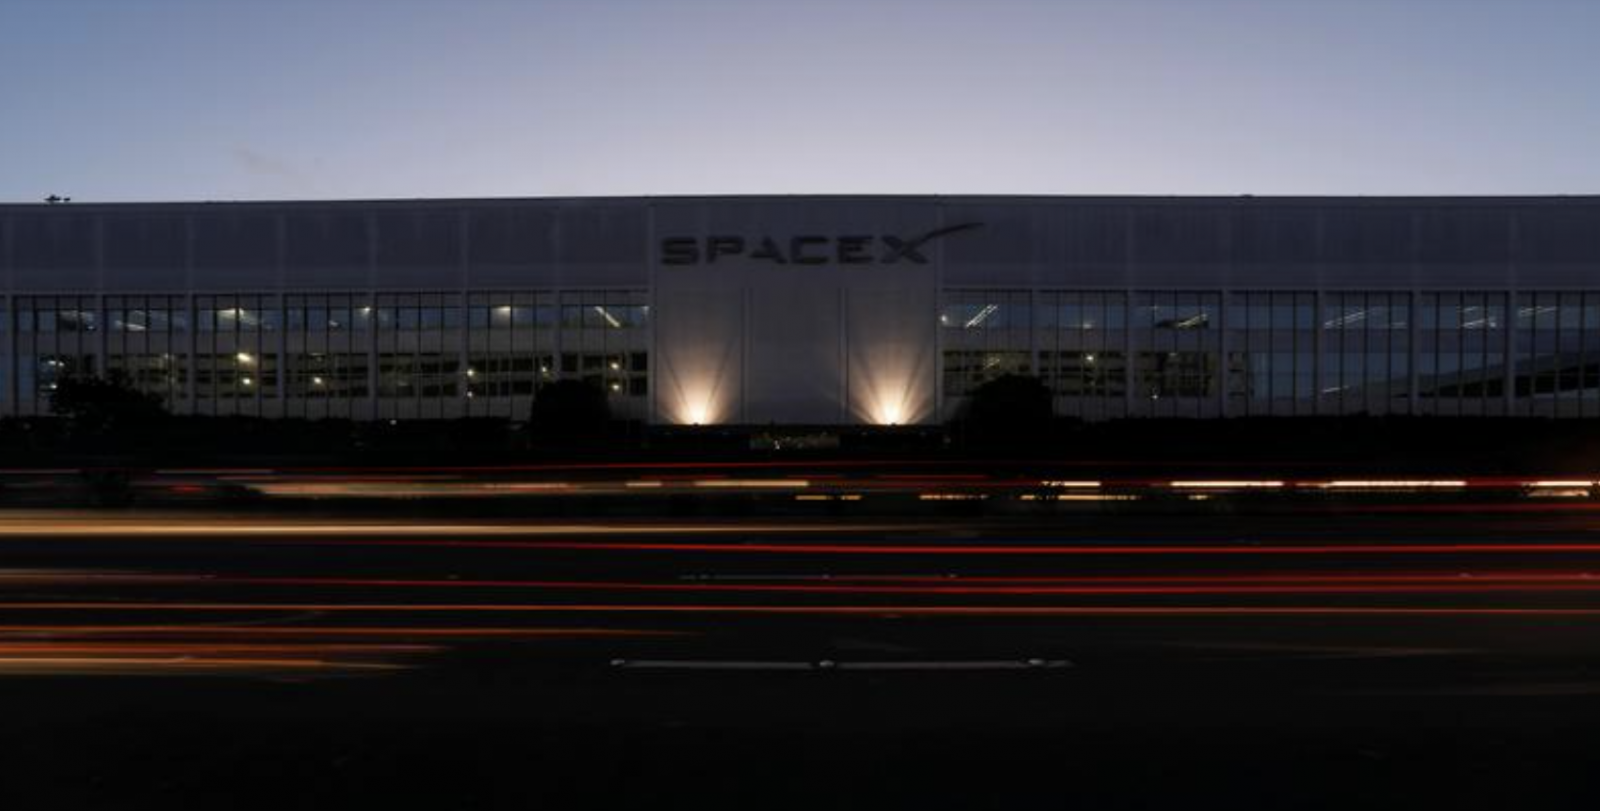 SpaceX raises $1.16 billion in equity financing